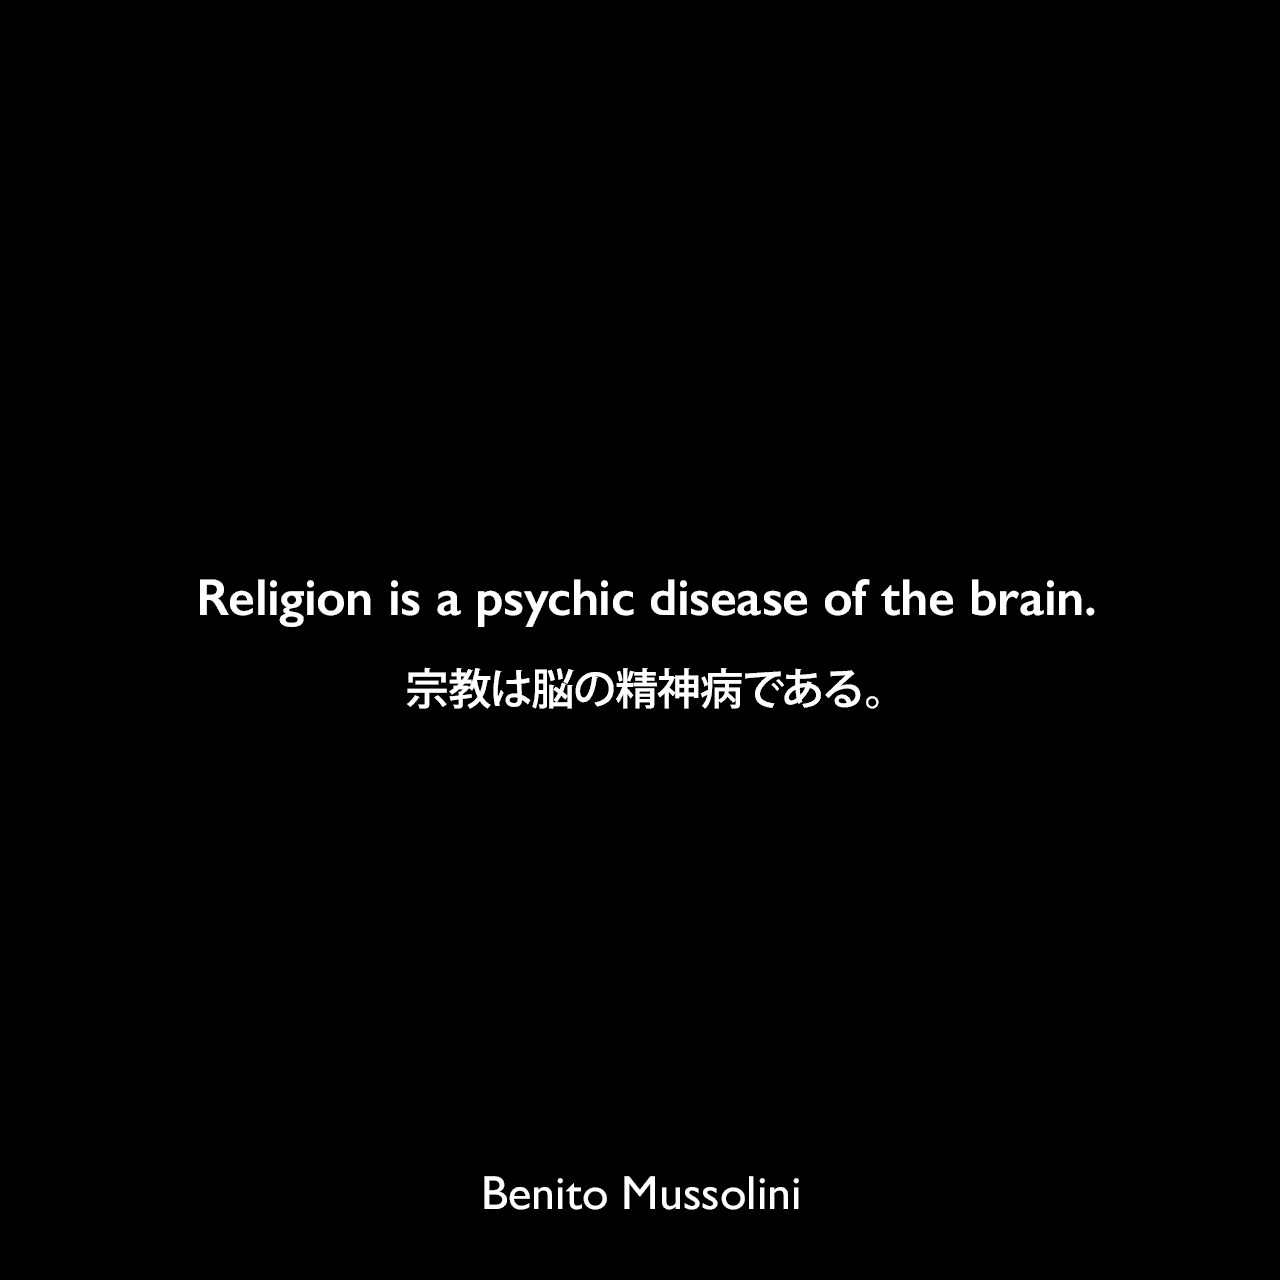 Religion is a psychic disease of the brain.宗教は脳の精神病である。- ムッソリーニによる本「God Does Not Exist.」(1904年)よりBenito Mussolini